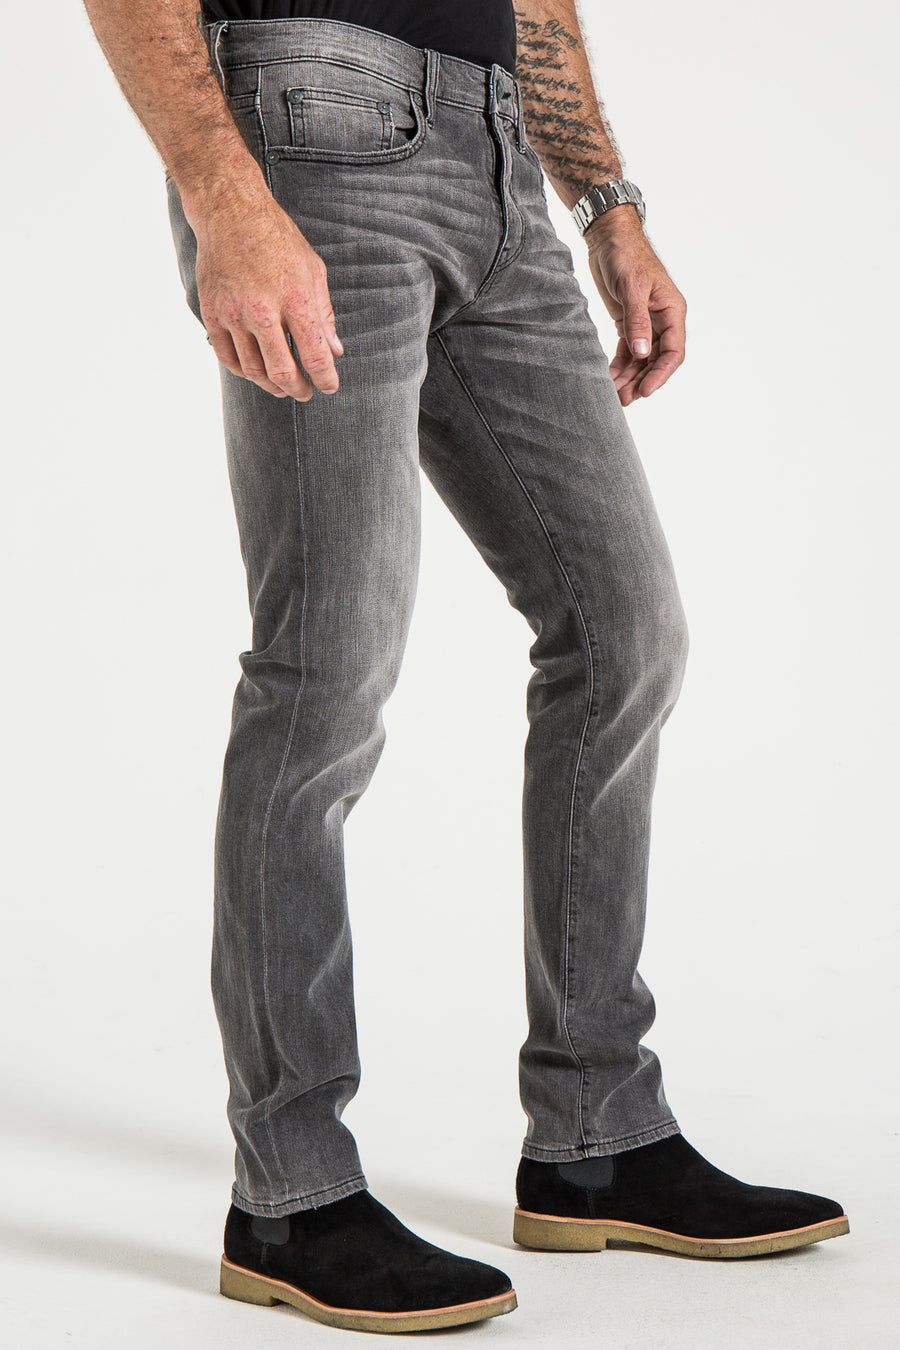 BARFLY SLIM IN DESERT GRAY DENIM